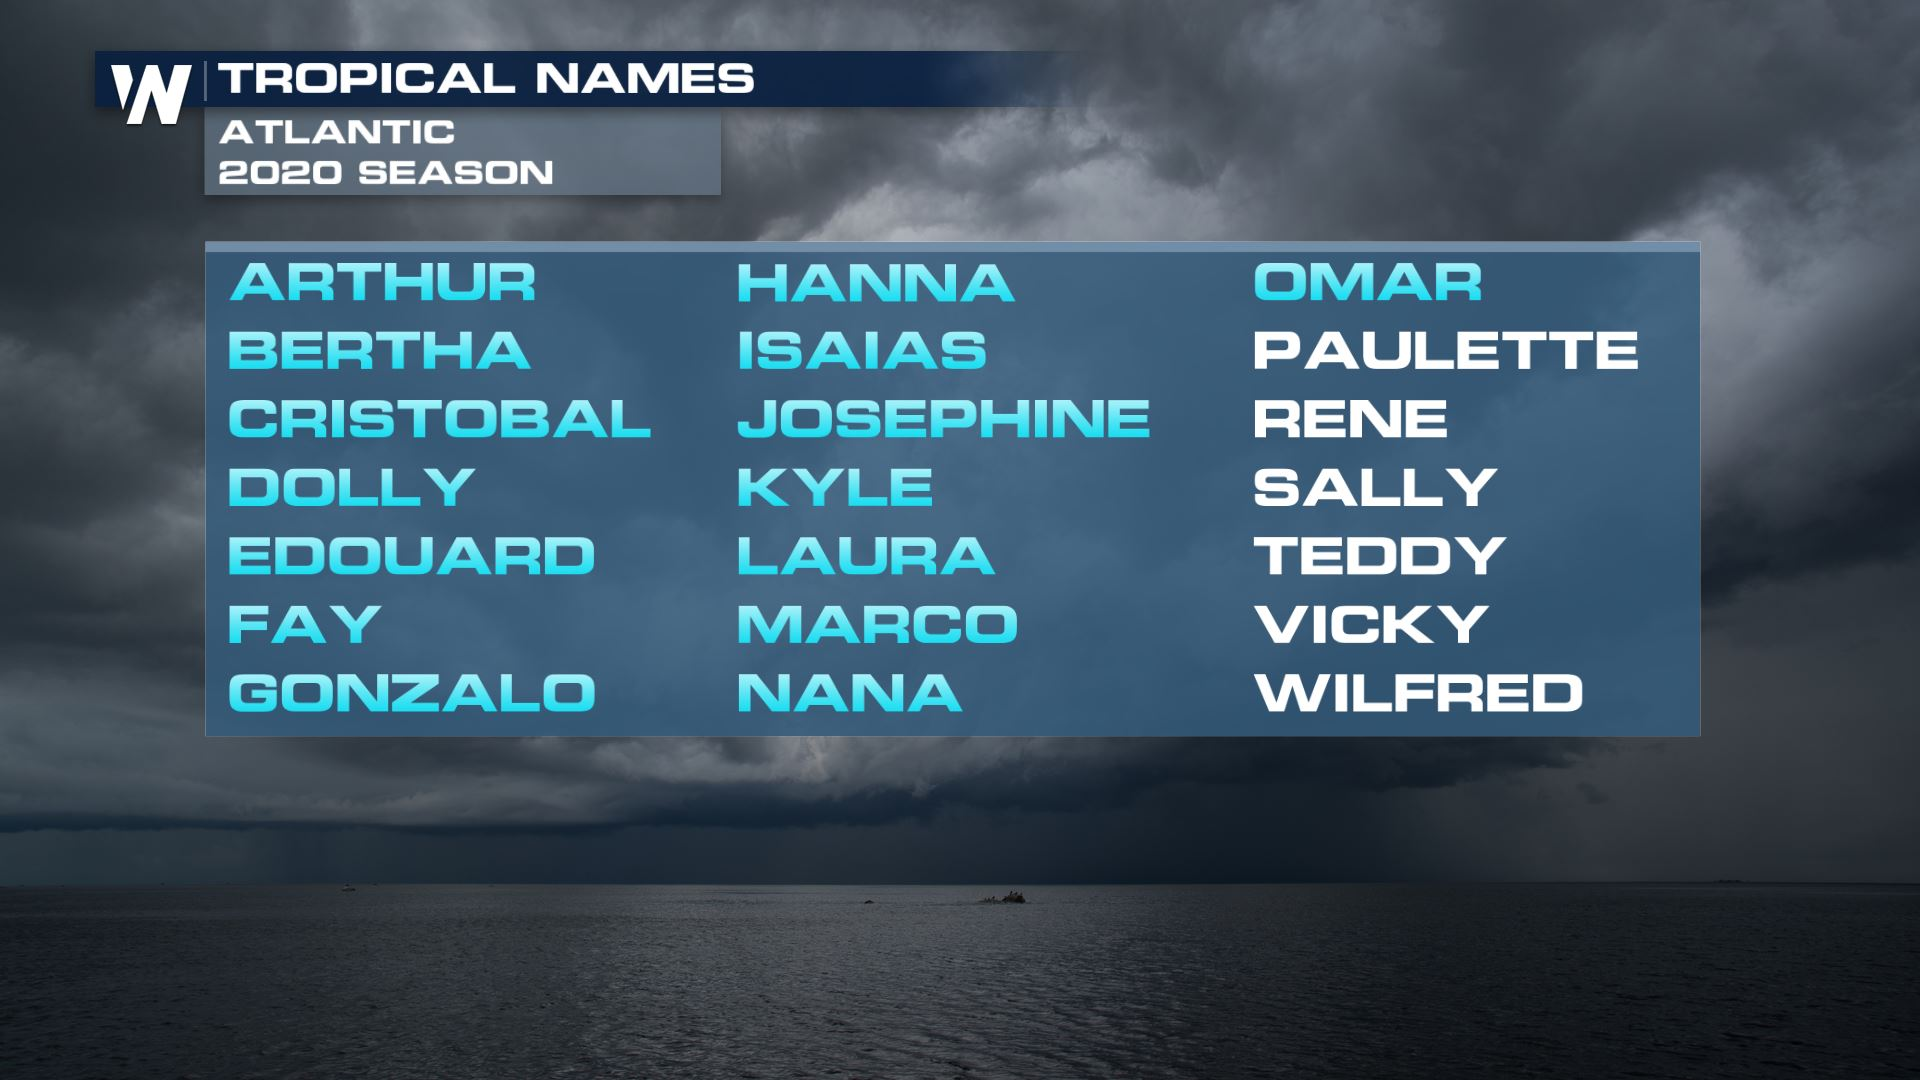 12 Tropical Storms Have Been Earliest To Form